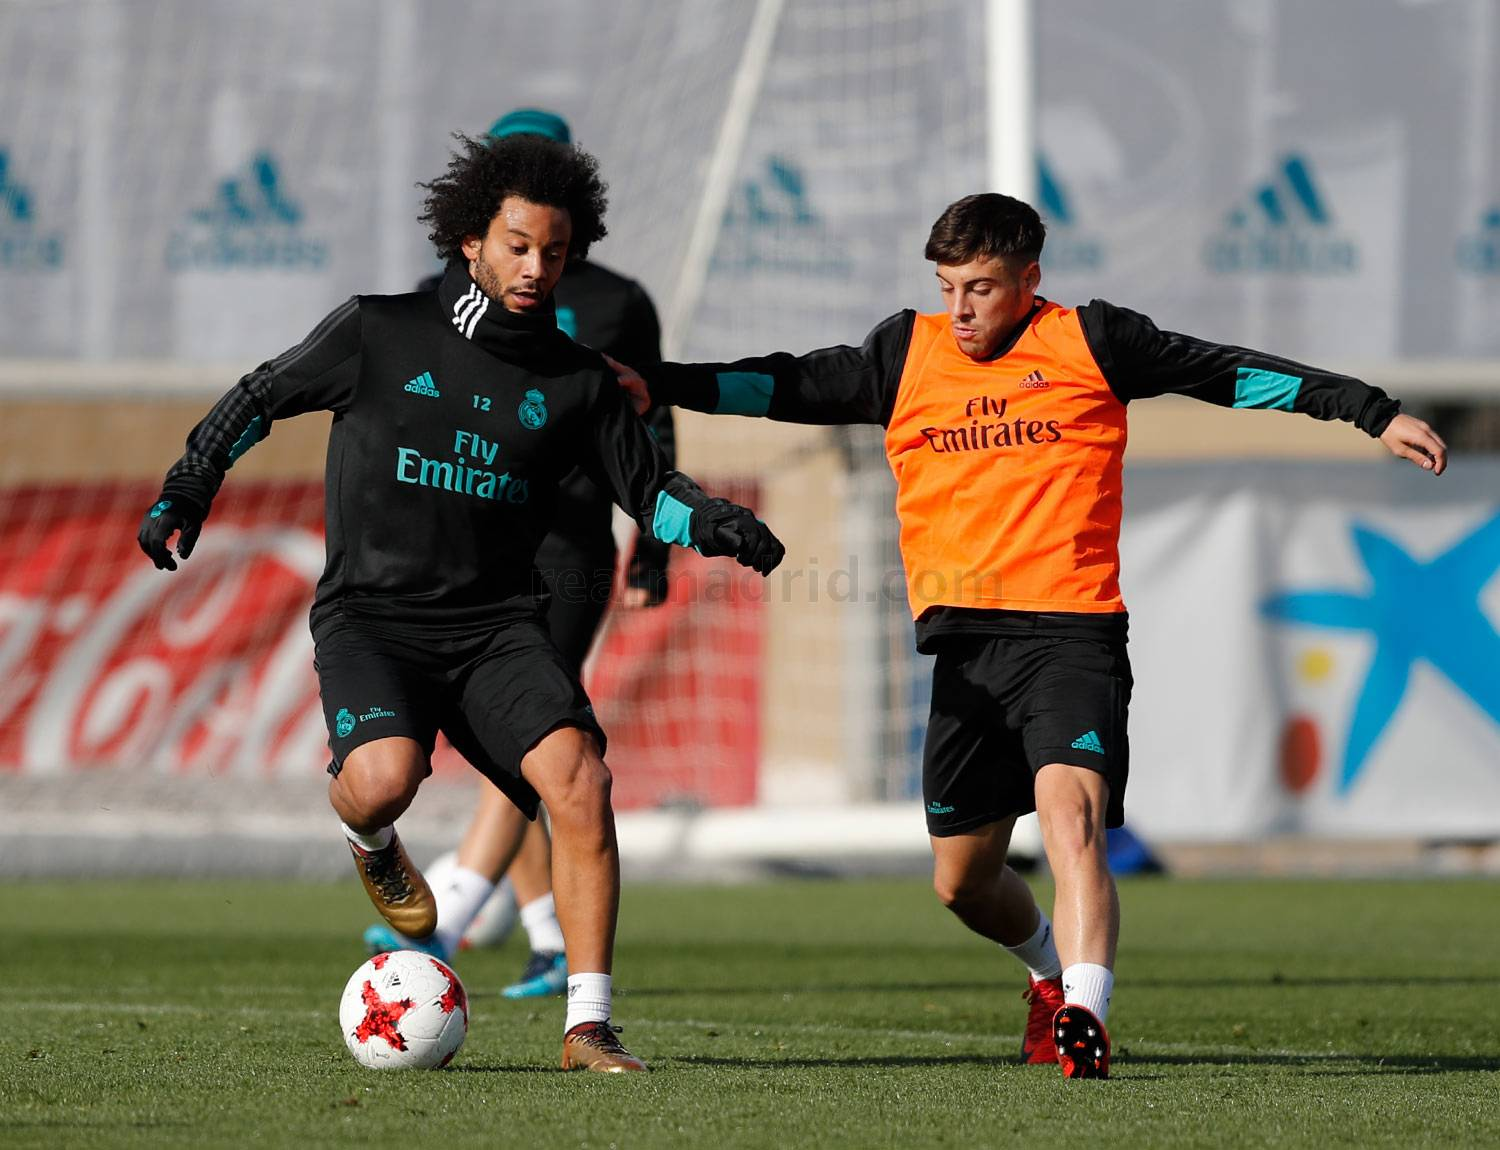 Real Madrid - Entrenamiento del Real Madrid - 27-11-2017